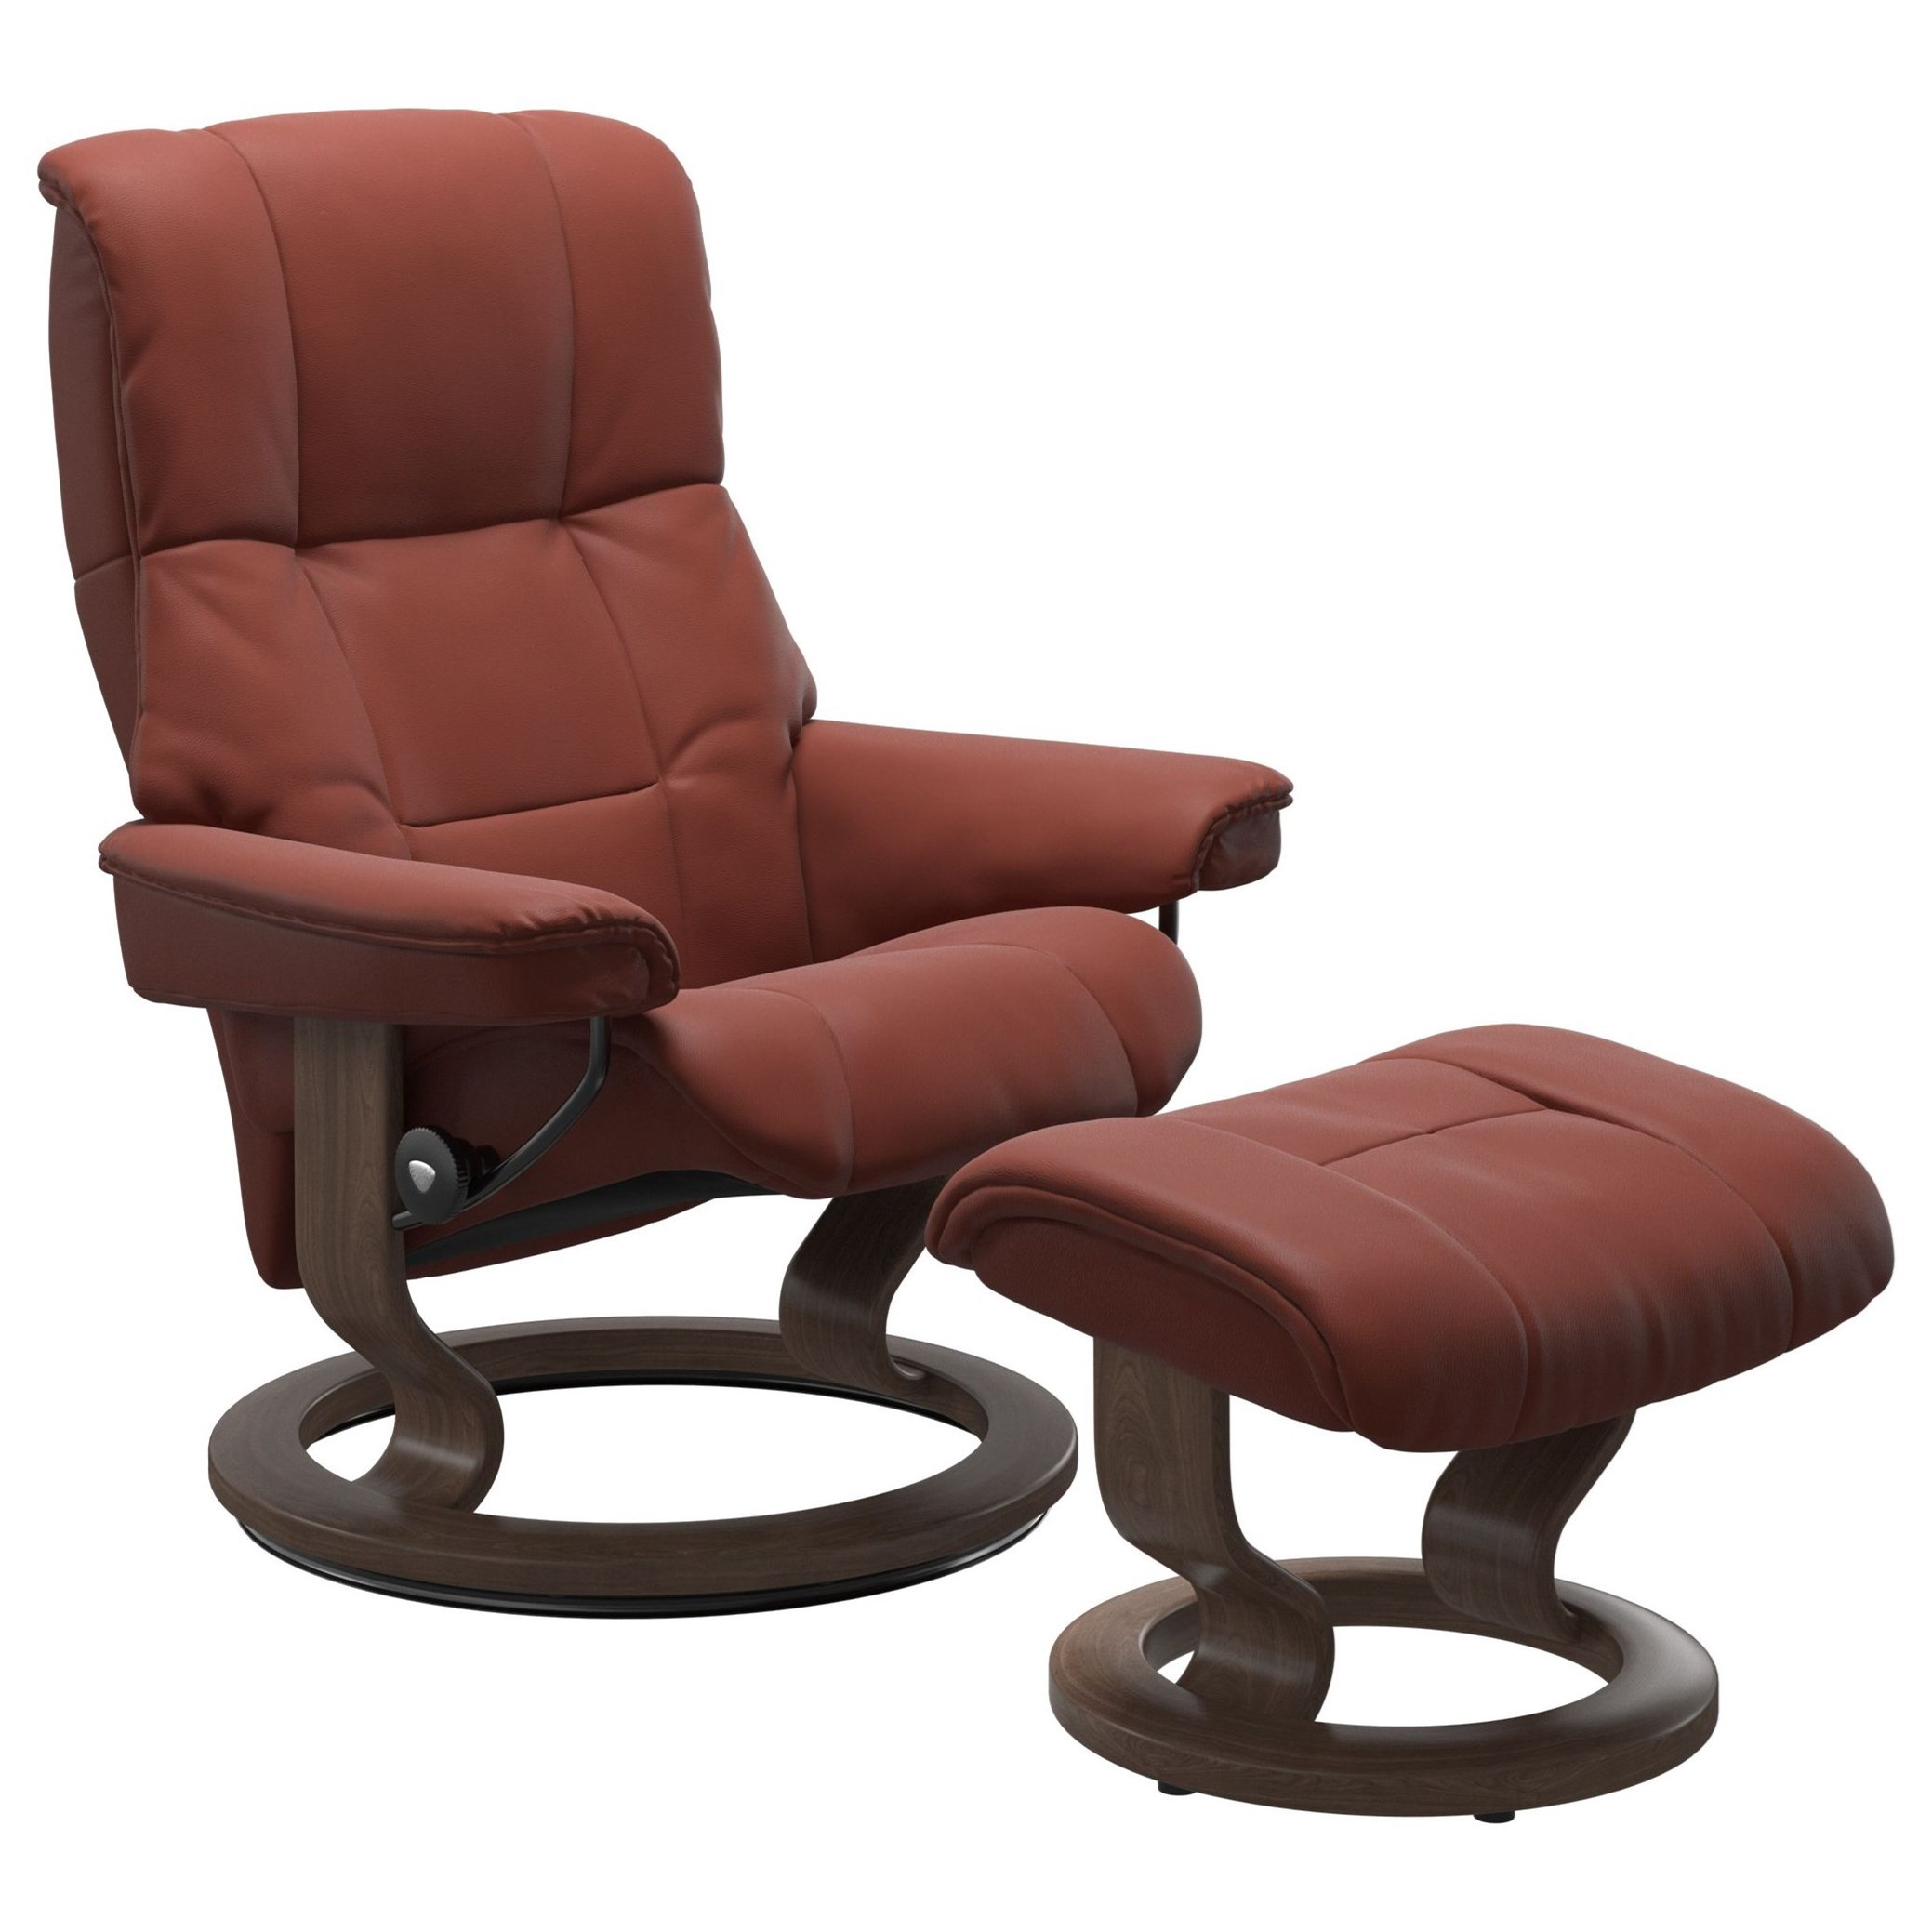 Mayfair Small Chair & Ottoman with Classic Base by Stressless at Bennett's Furniture and Mattresses